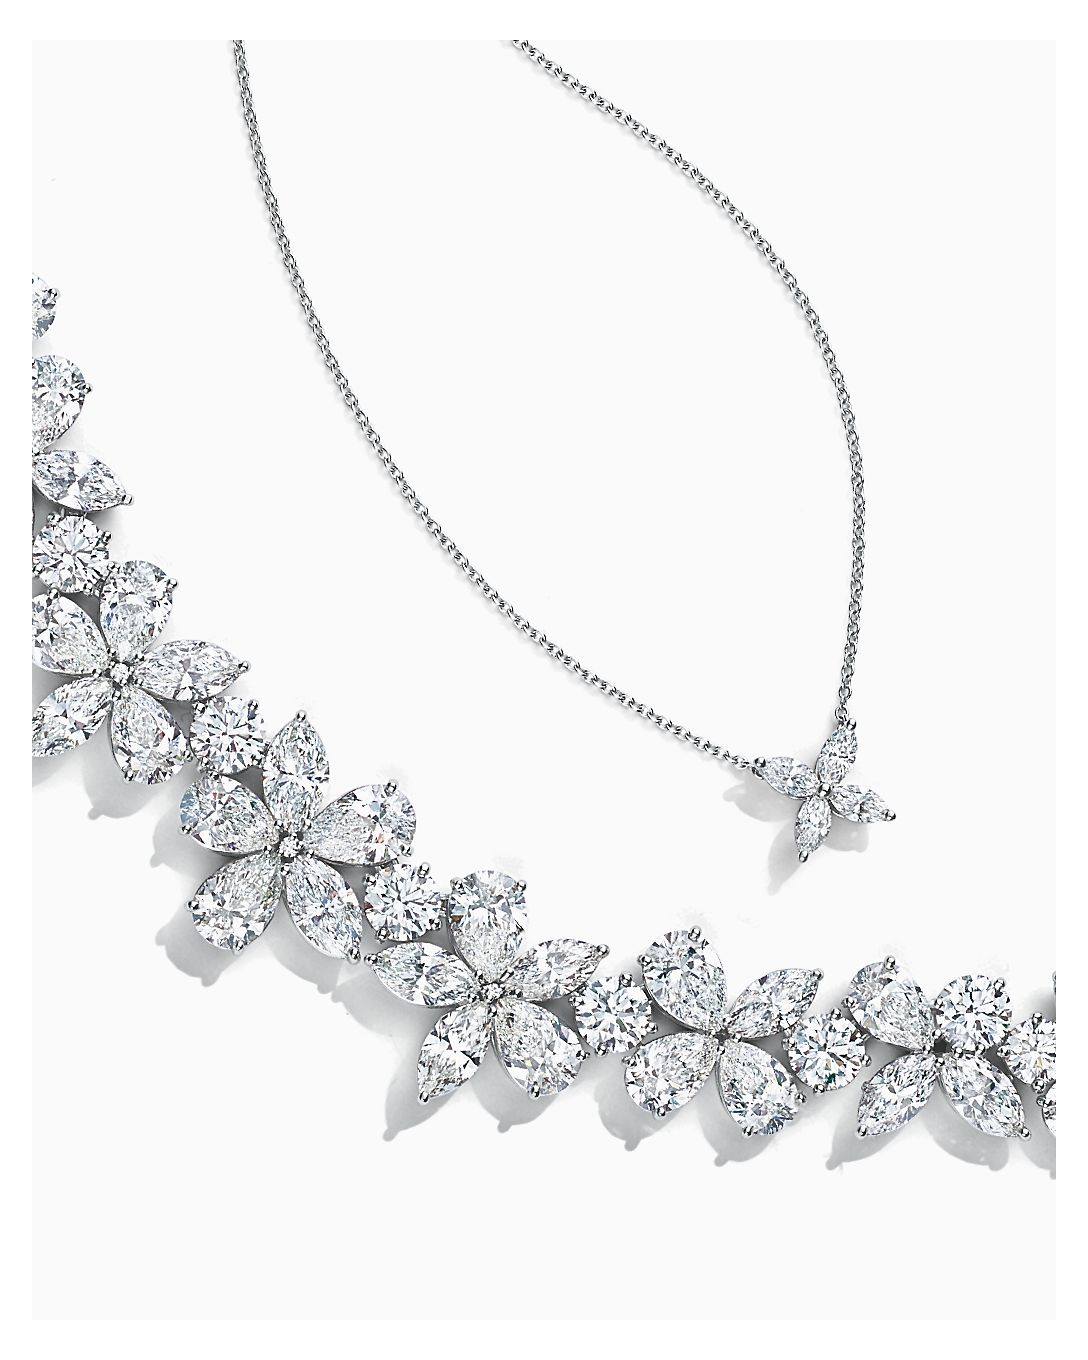 Shop the Tiffany Victoria® collection